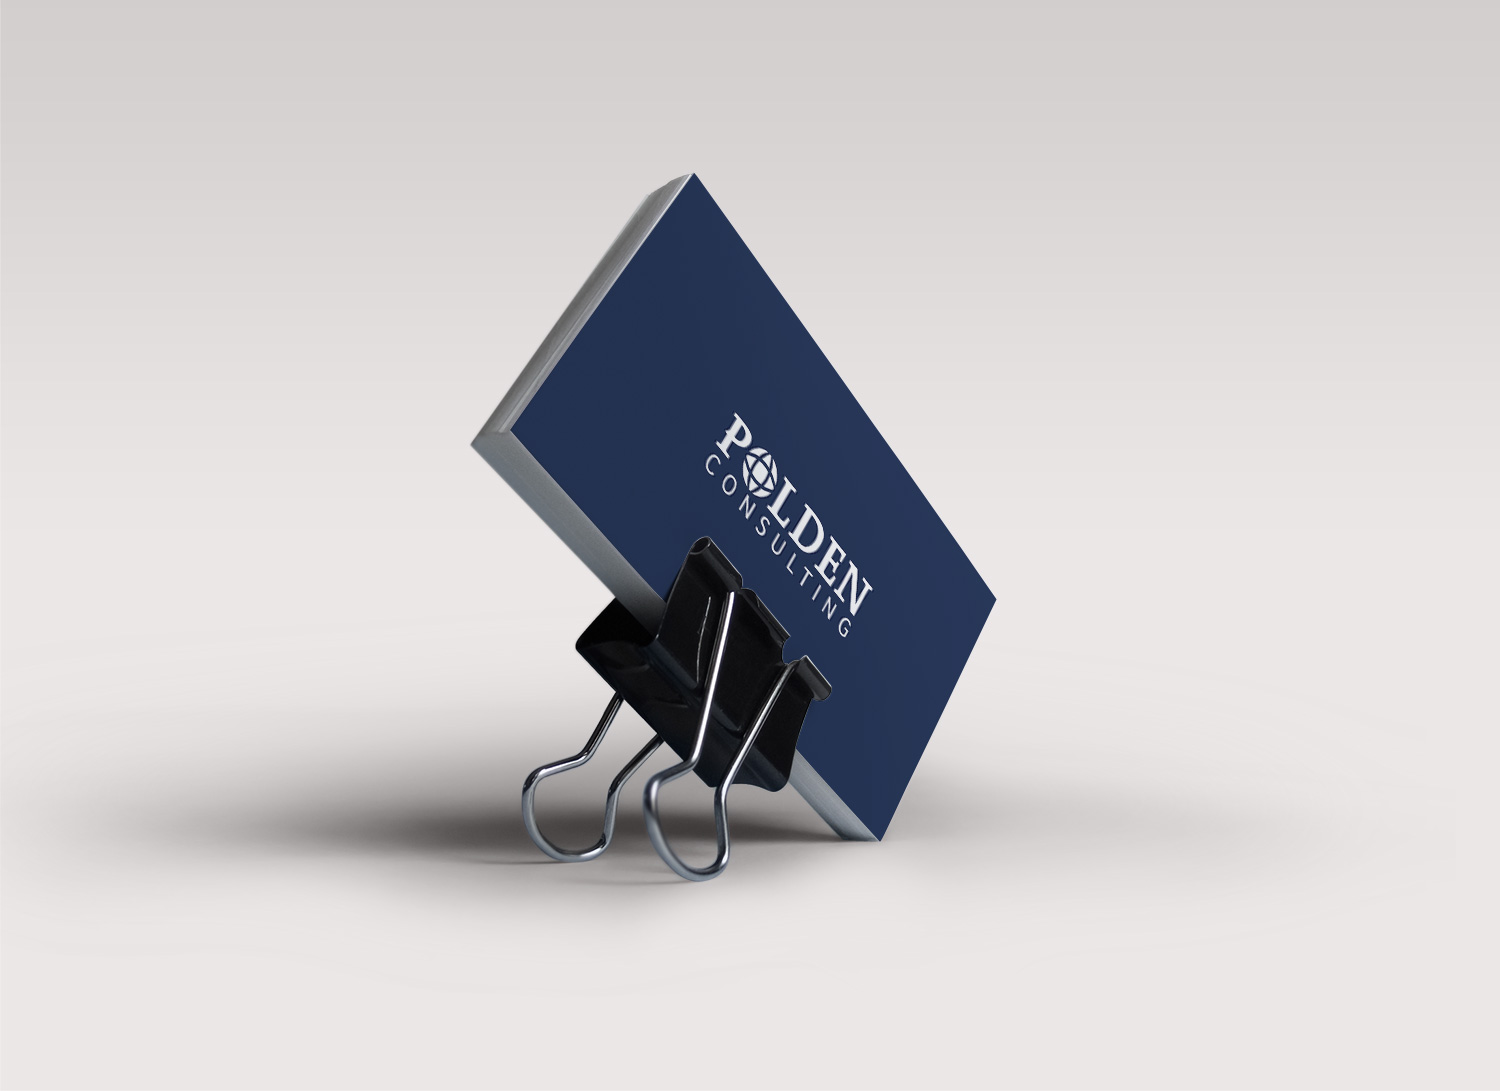 Polden Consulting business cards